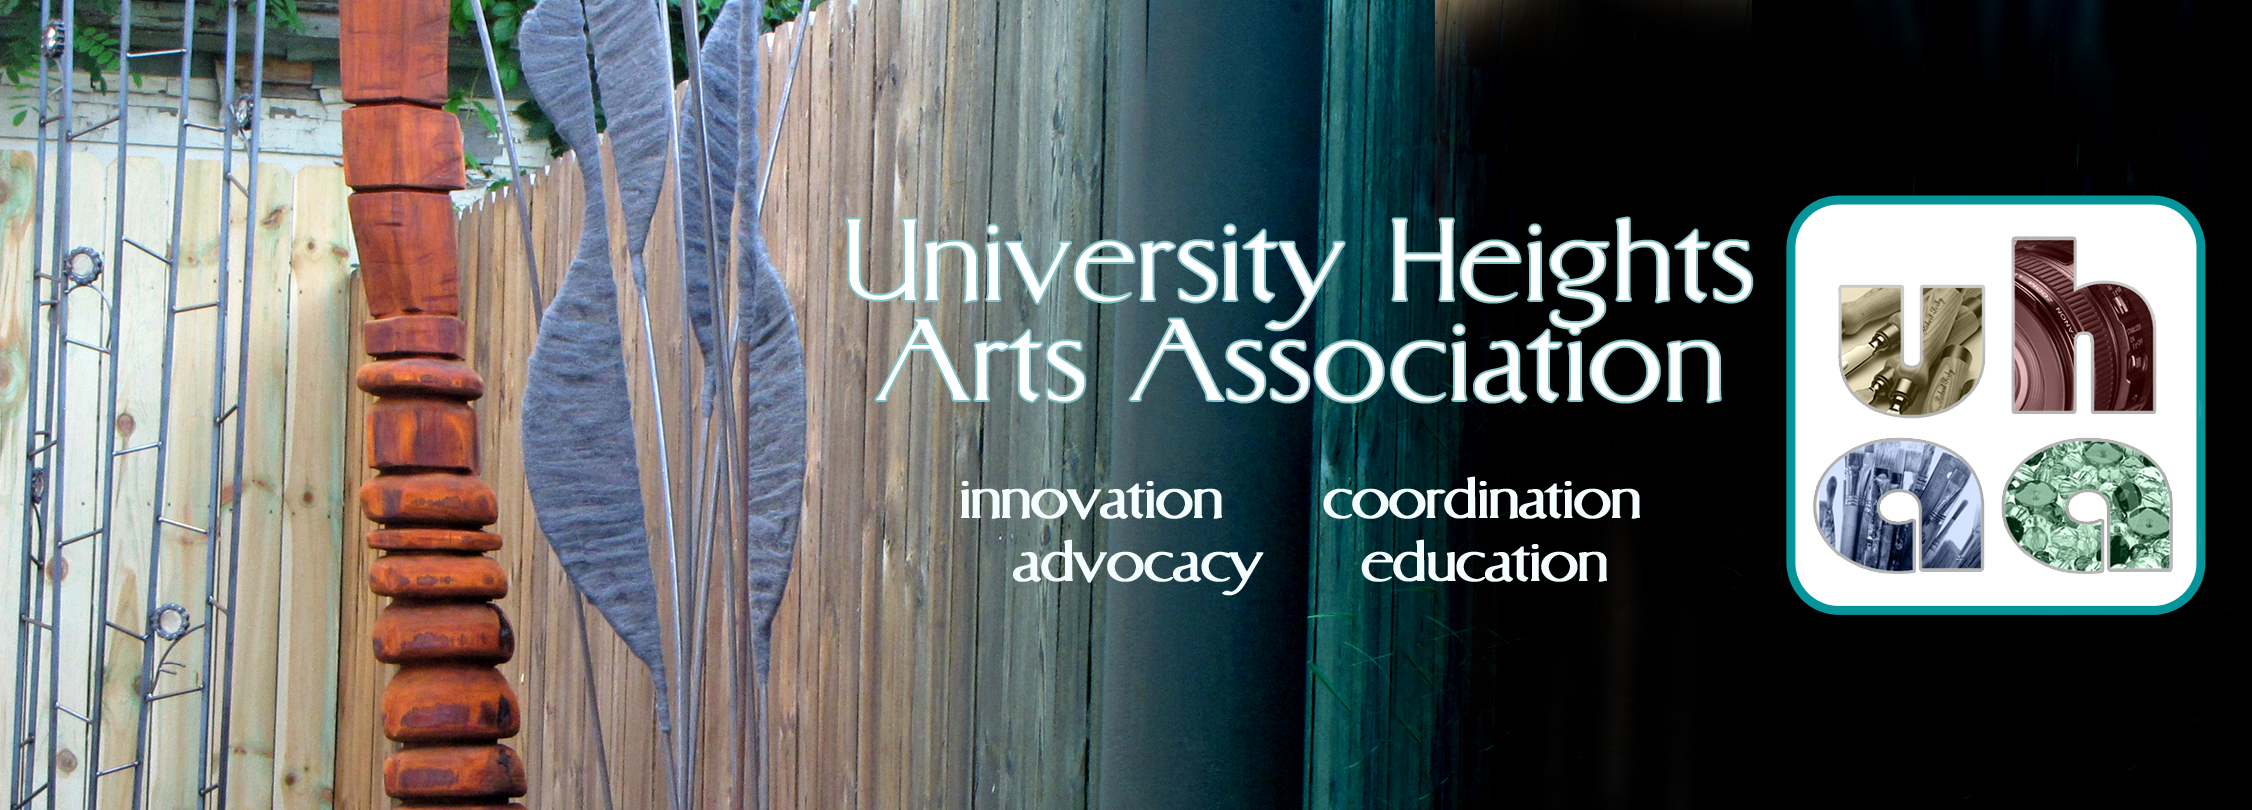 University Heights Arts Association